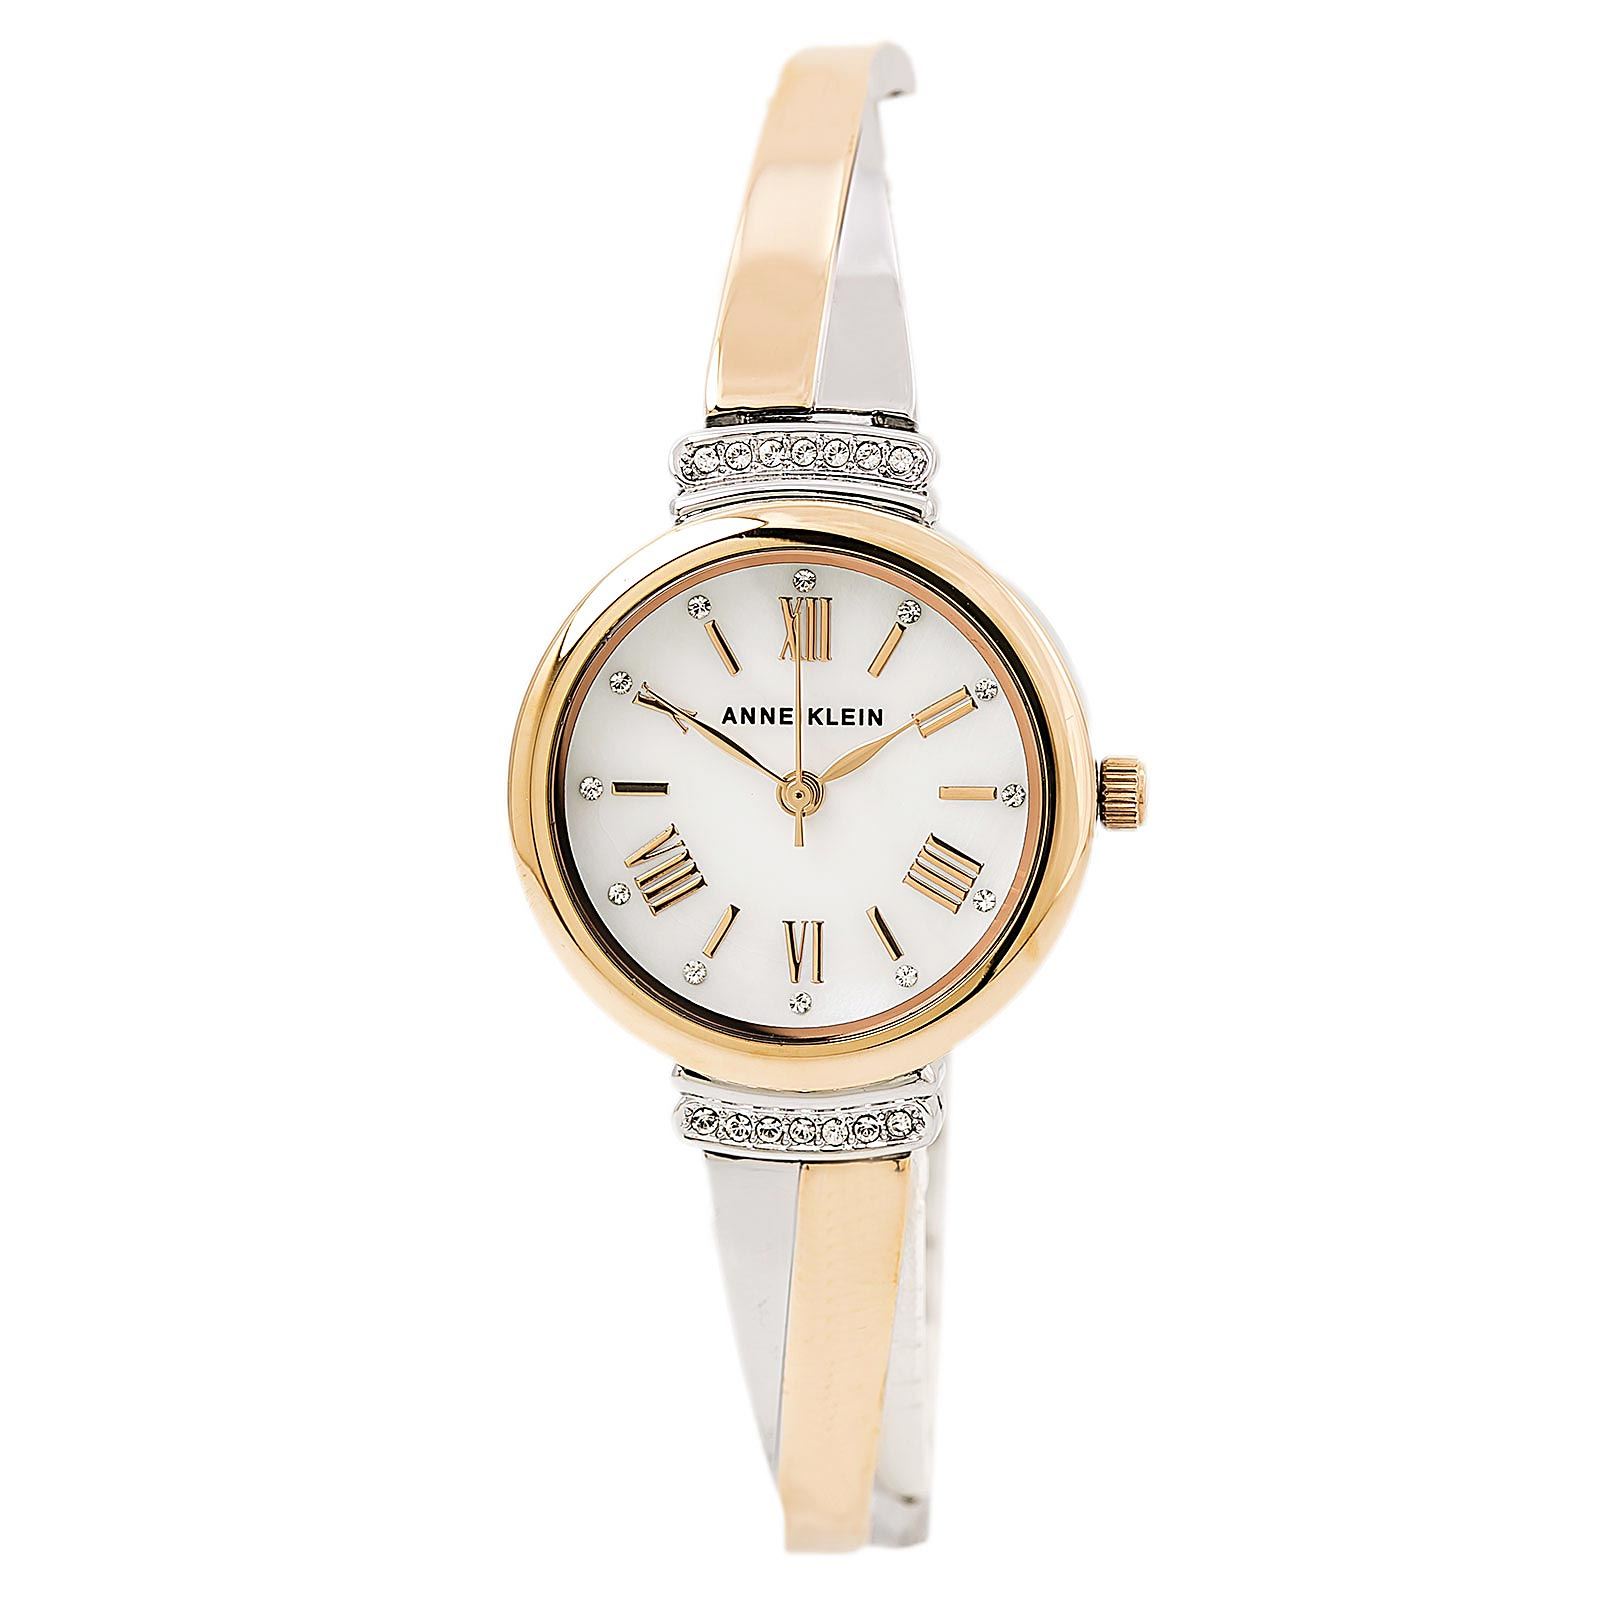 Anne Klein 2245RTST Women's White MOP Dial Two Tone Bangle Bracelet Swarovski Crystal Watch Set